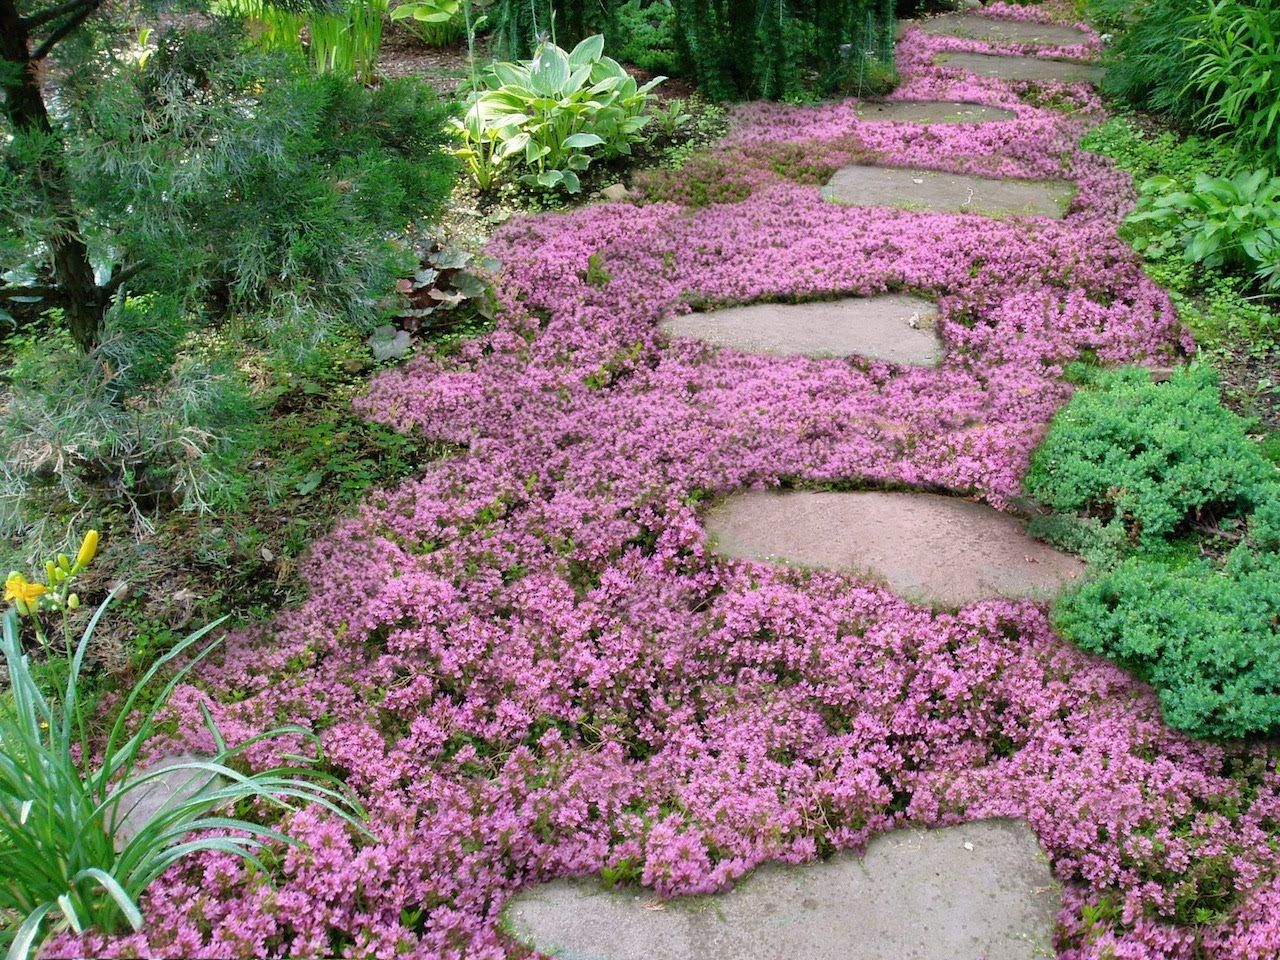 Live Mulch -- How to plant Sweet and Low flowering ground cover.